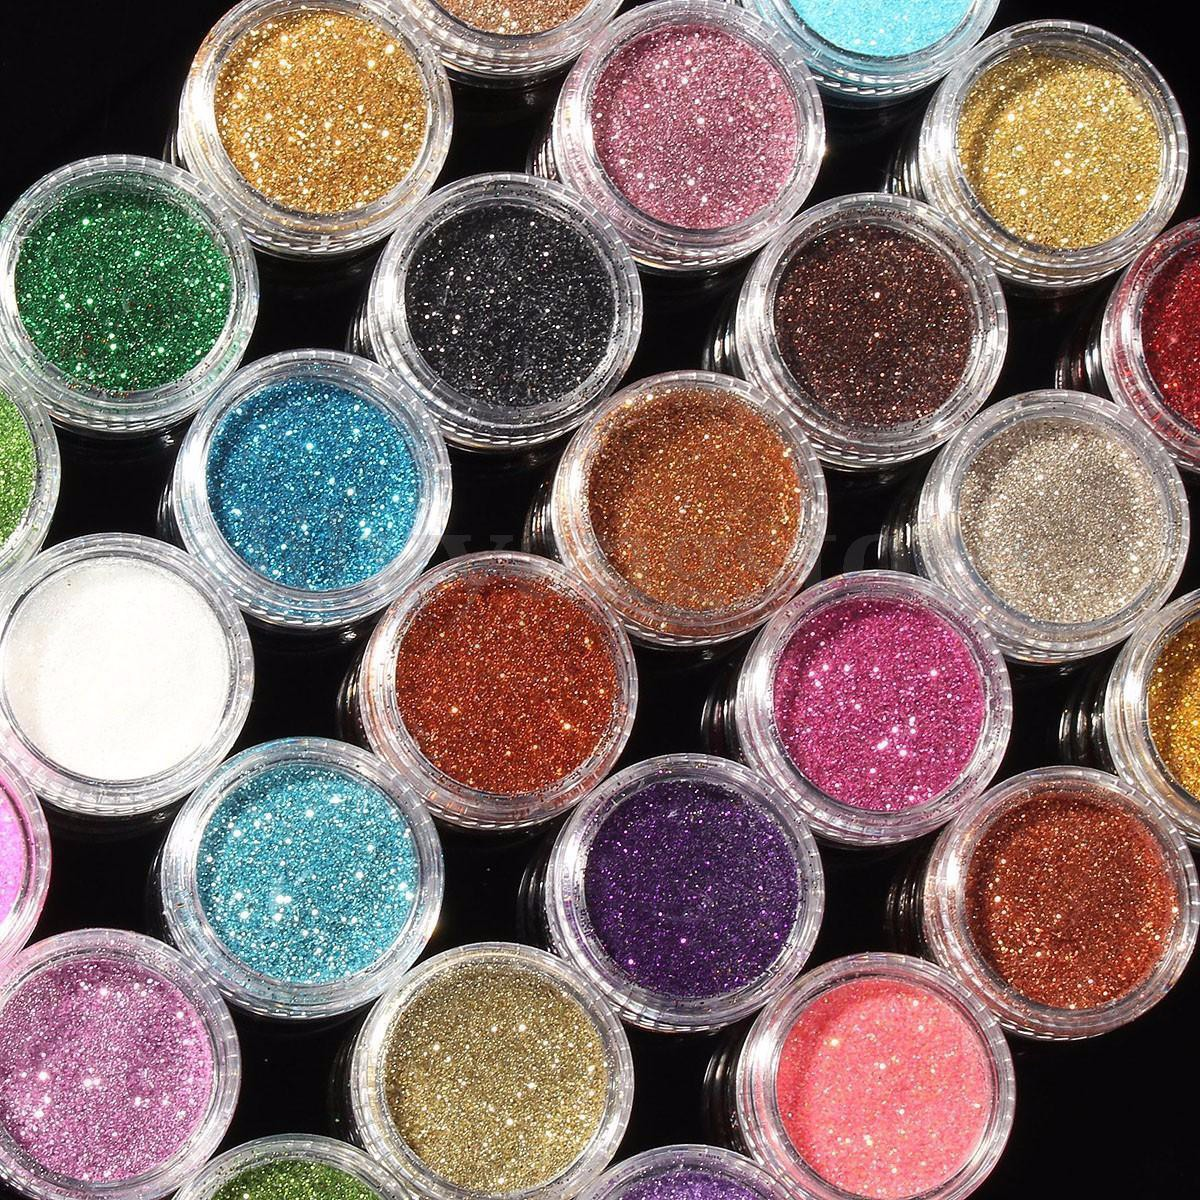 24 loose glitter eyeshadow eye shadow face body painting paint image is loading 24 loose glitter eyeshadow eye shadow face body prinsesfo Image collections